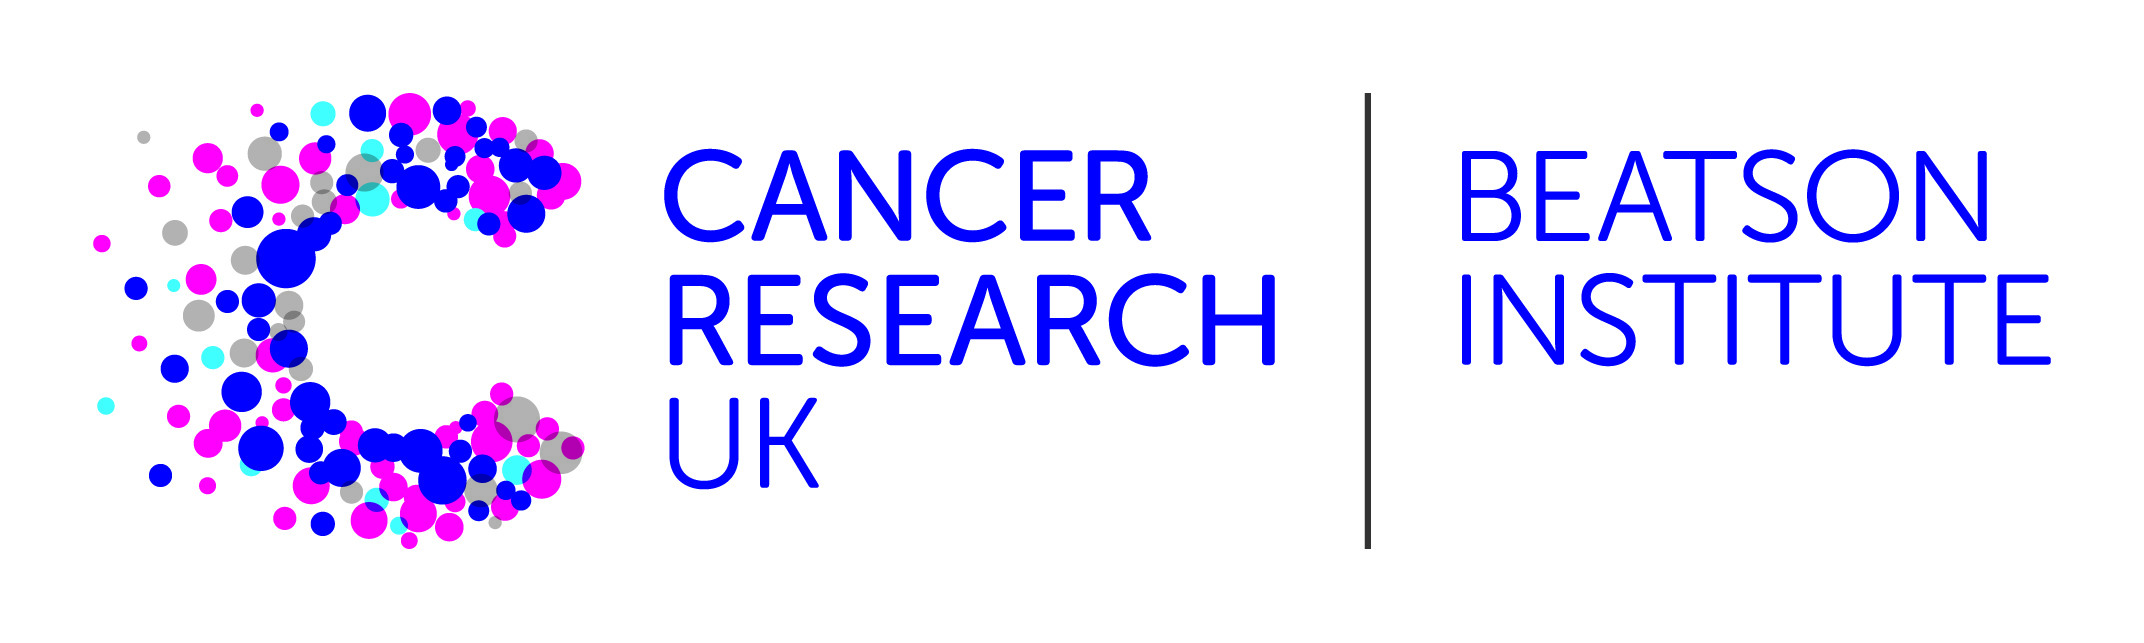 Cancer Research UK Glasgow: The Beatson Institute